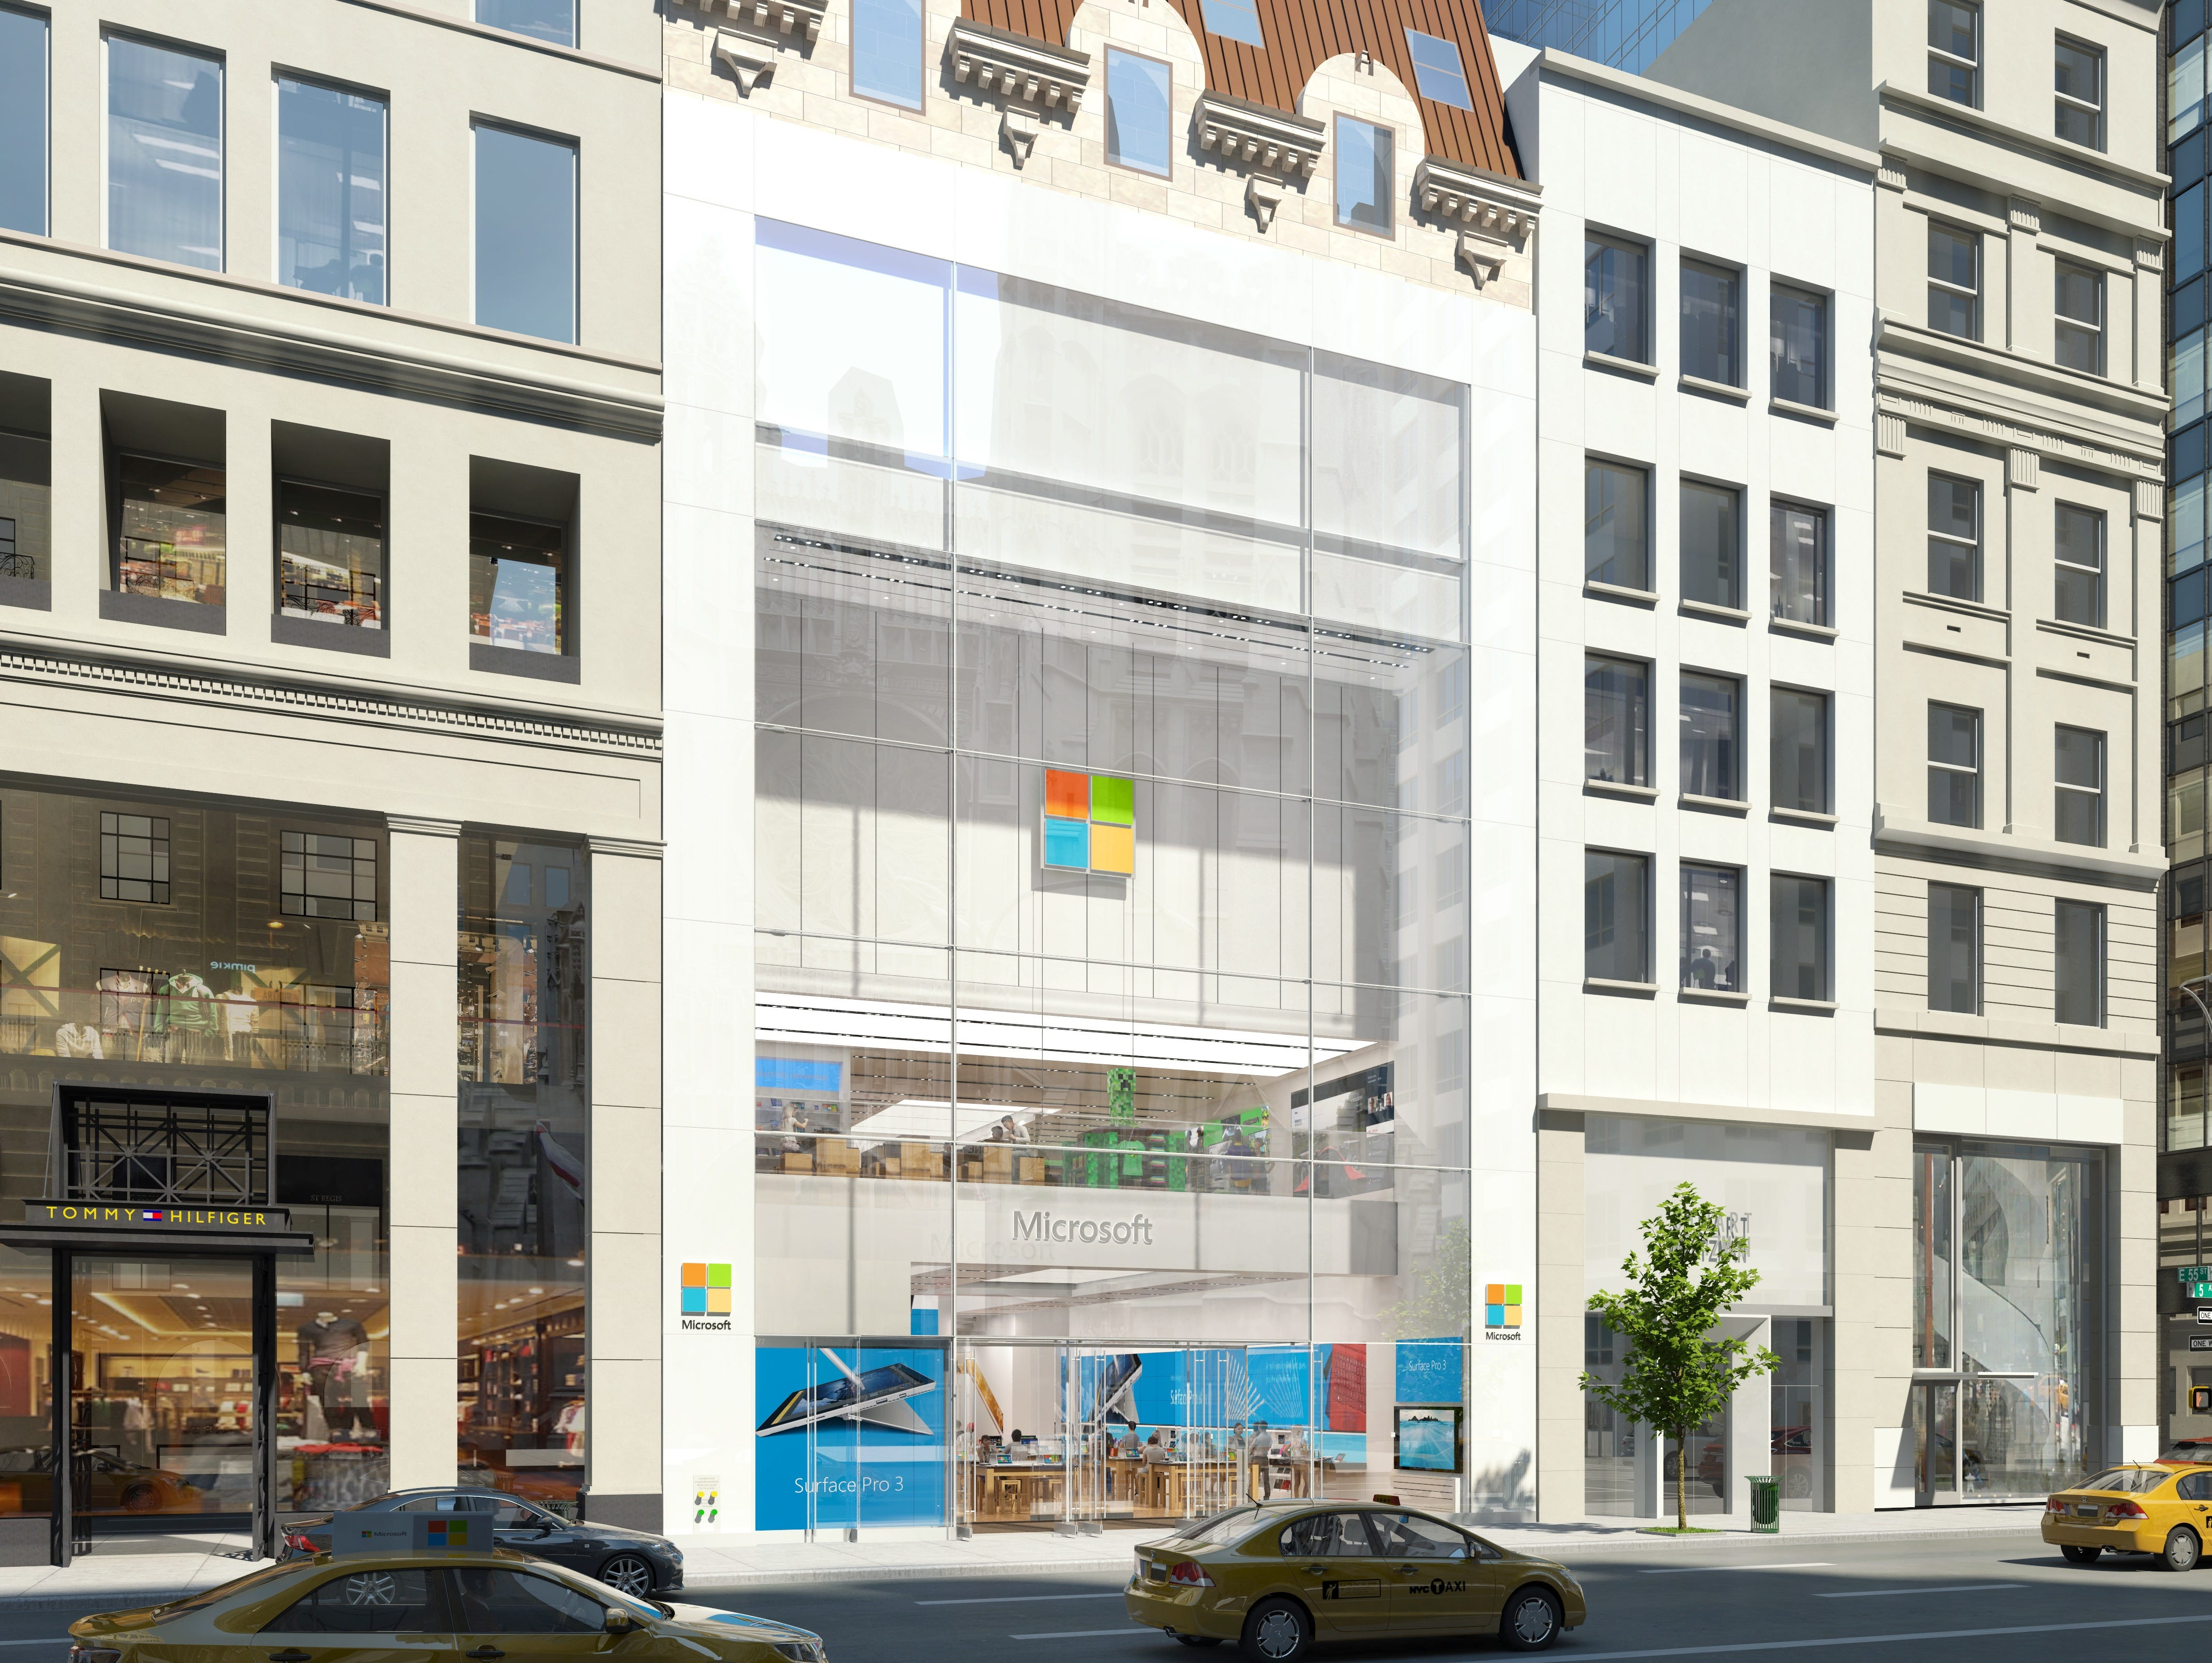 Rendering of Microsoft's new flagship store on Fifth Ave. in New York City